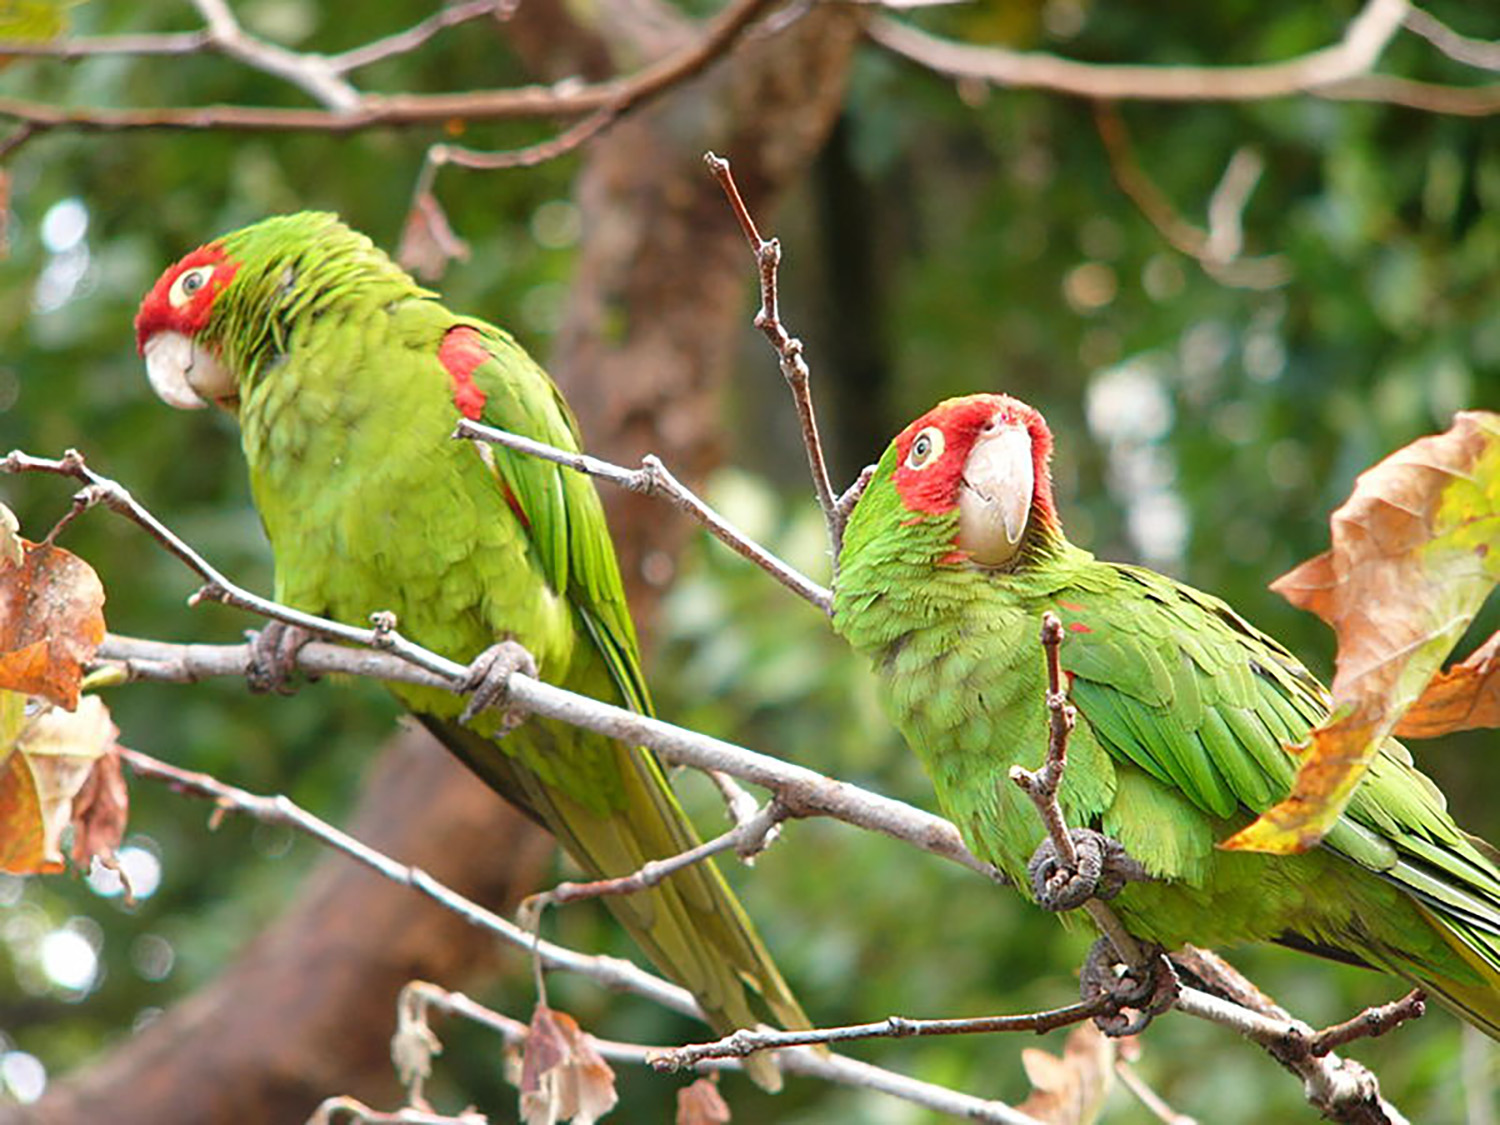 Red-masked parakeets perched on a branch. The wild parrots in Los Angeles survive by eating fruits and seeds.